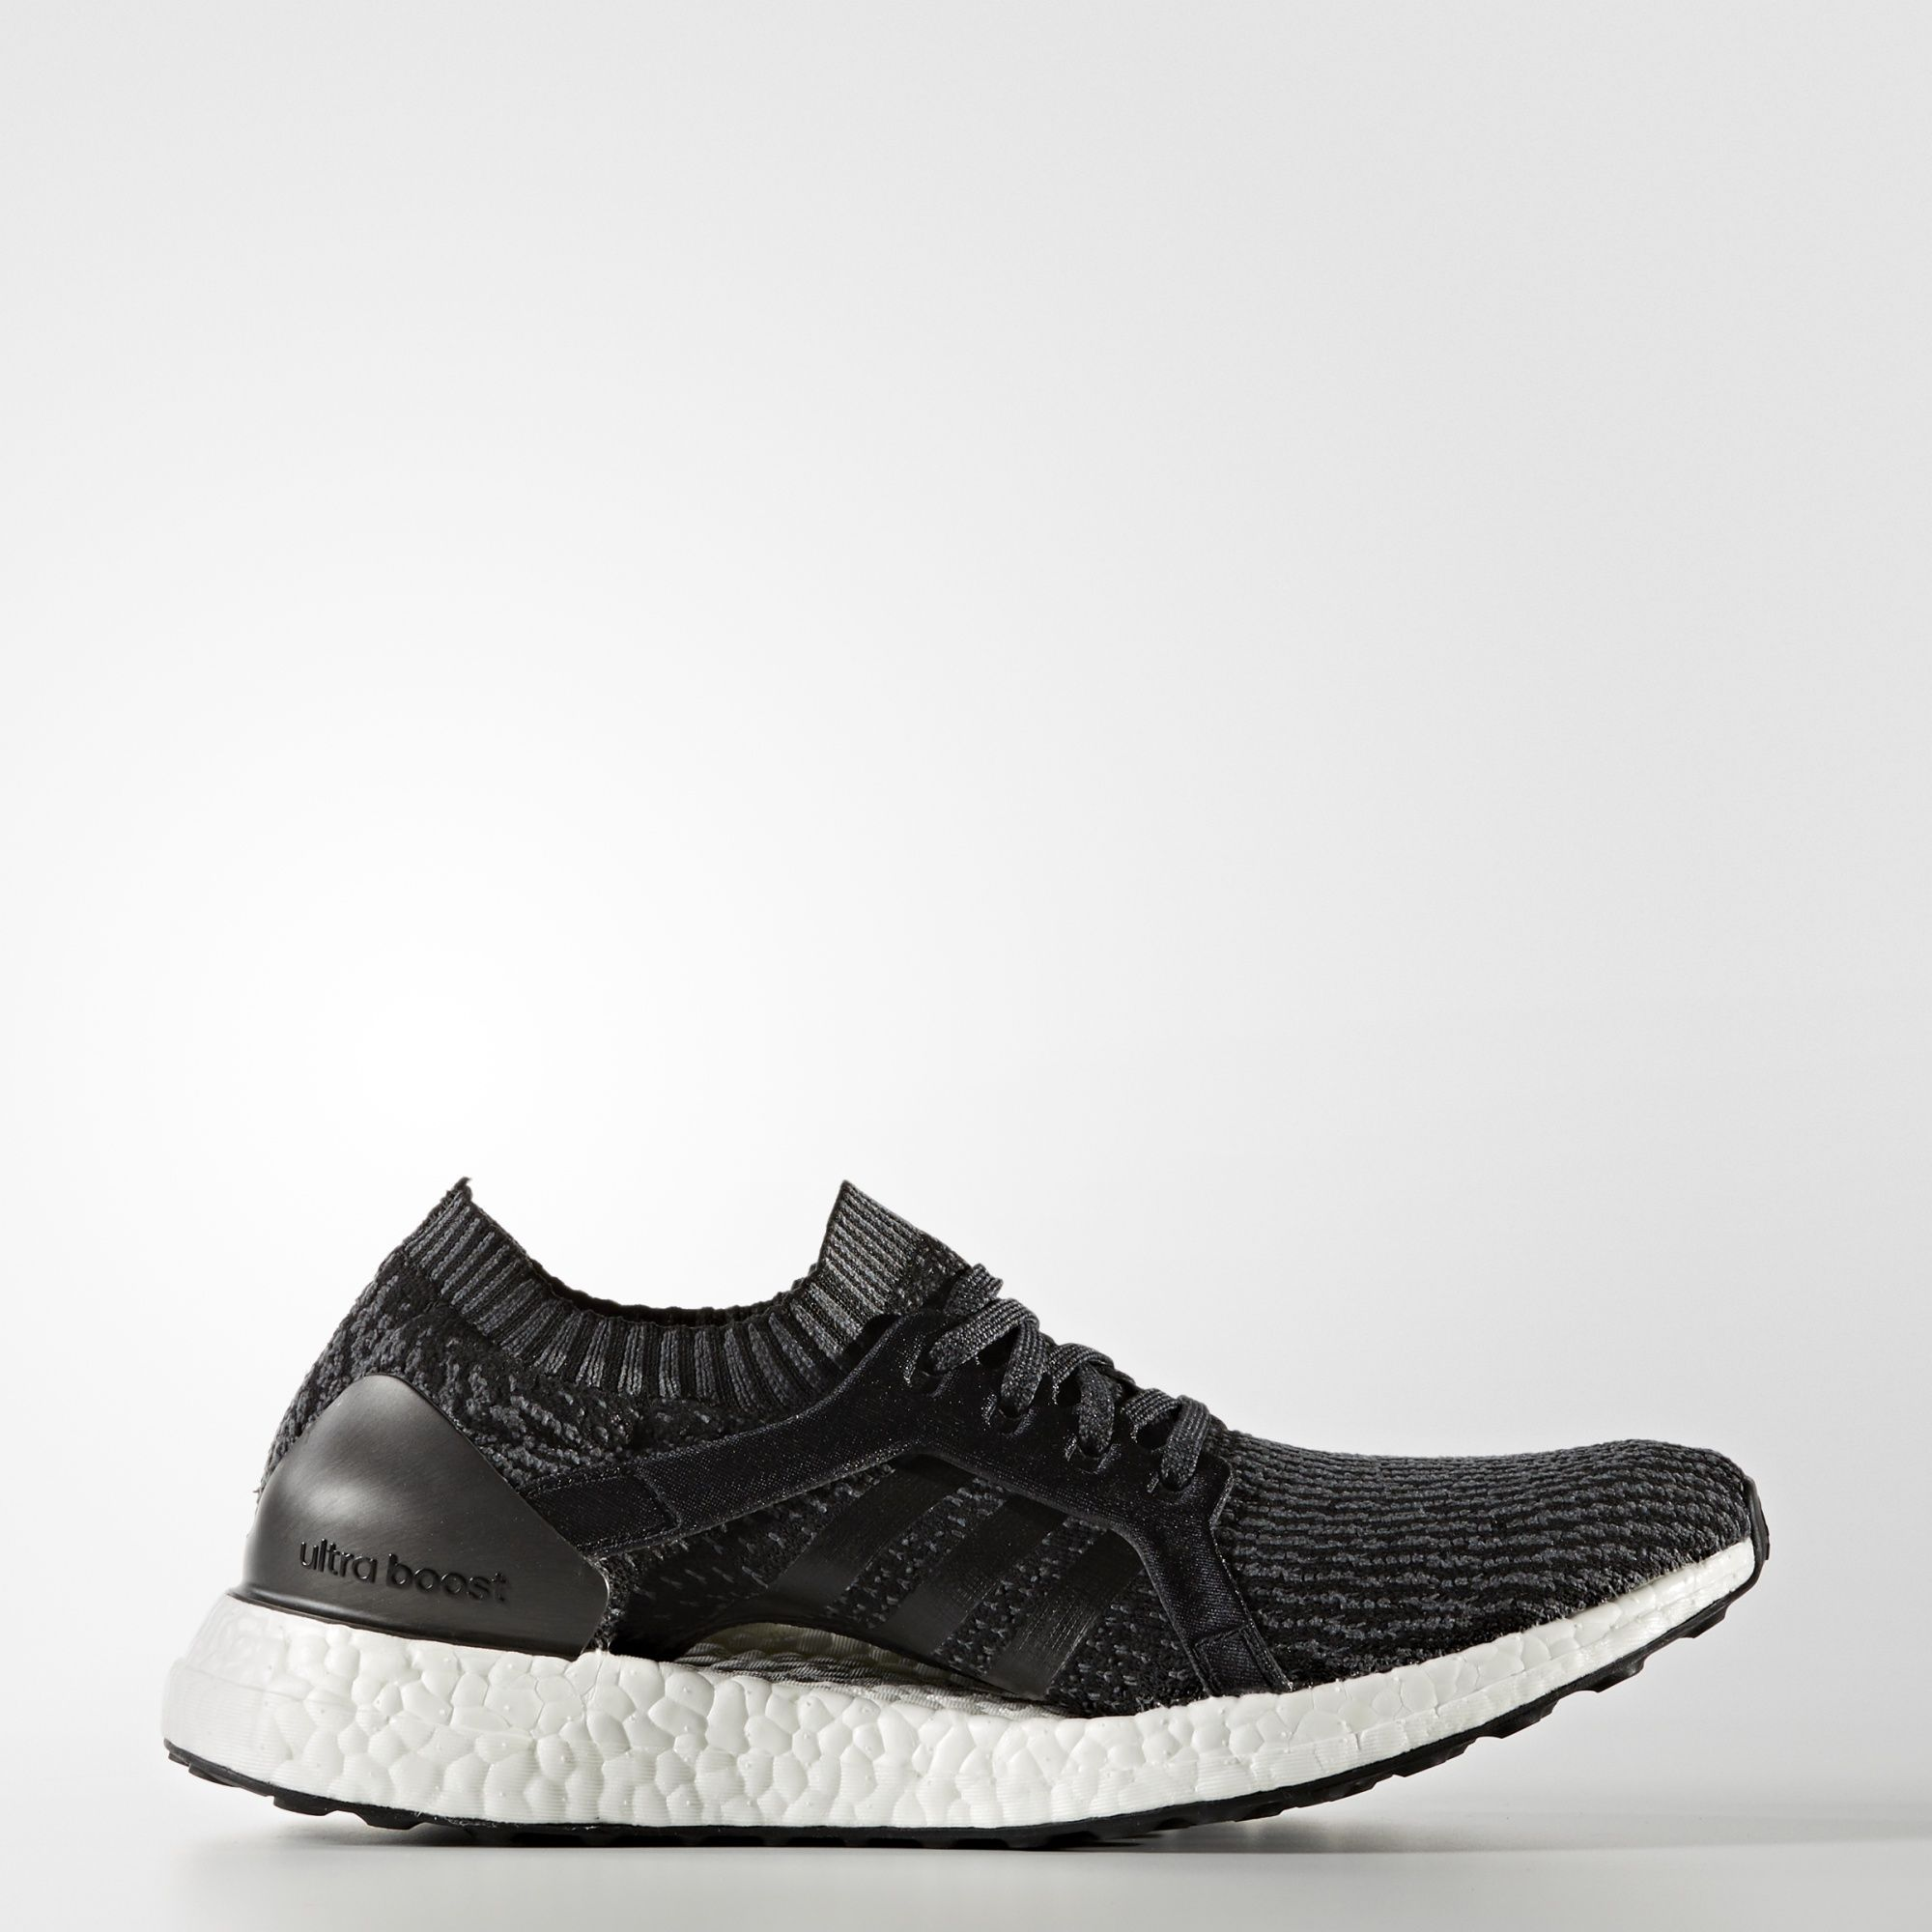 Adidas UltraBOOST X shoes in the color Core Black   Solid Grey   Onix  (BB1696) 0ed84004d